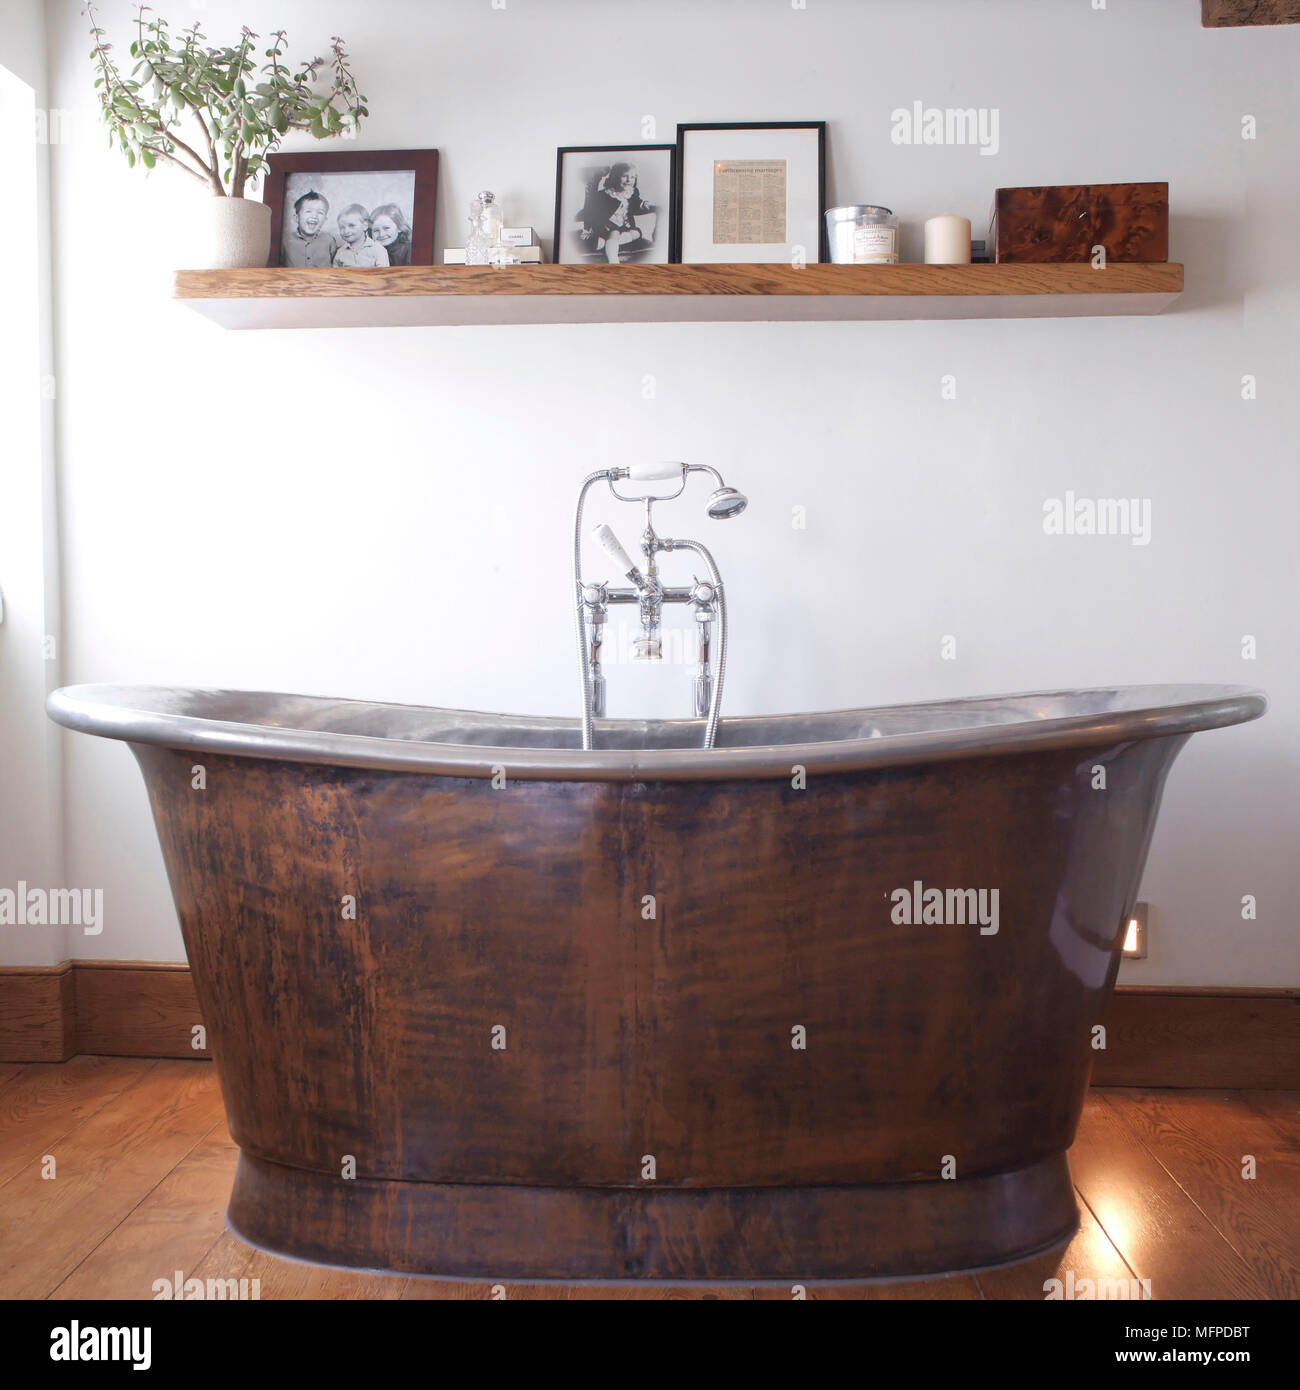 Freestanding Old Fashioned Bathtub In Centre Of Country Style Bathroom